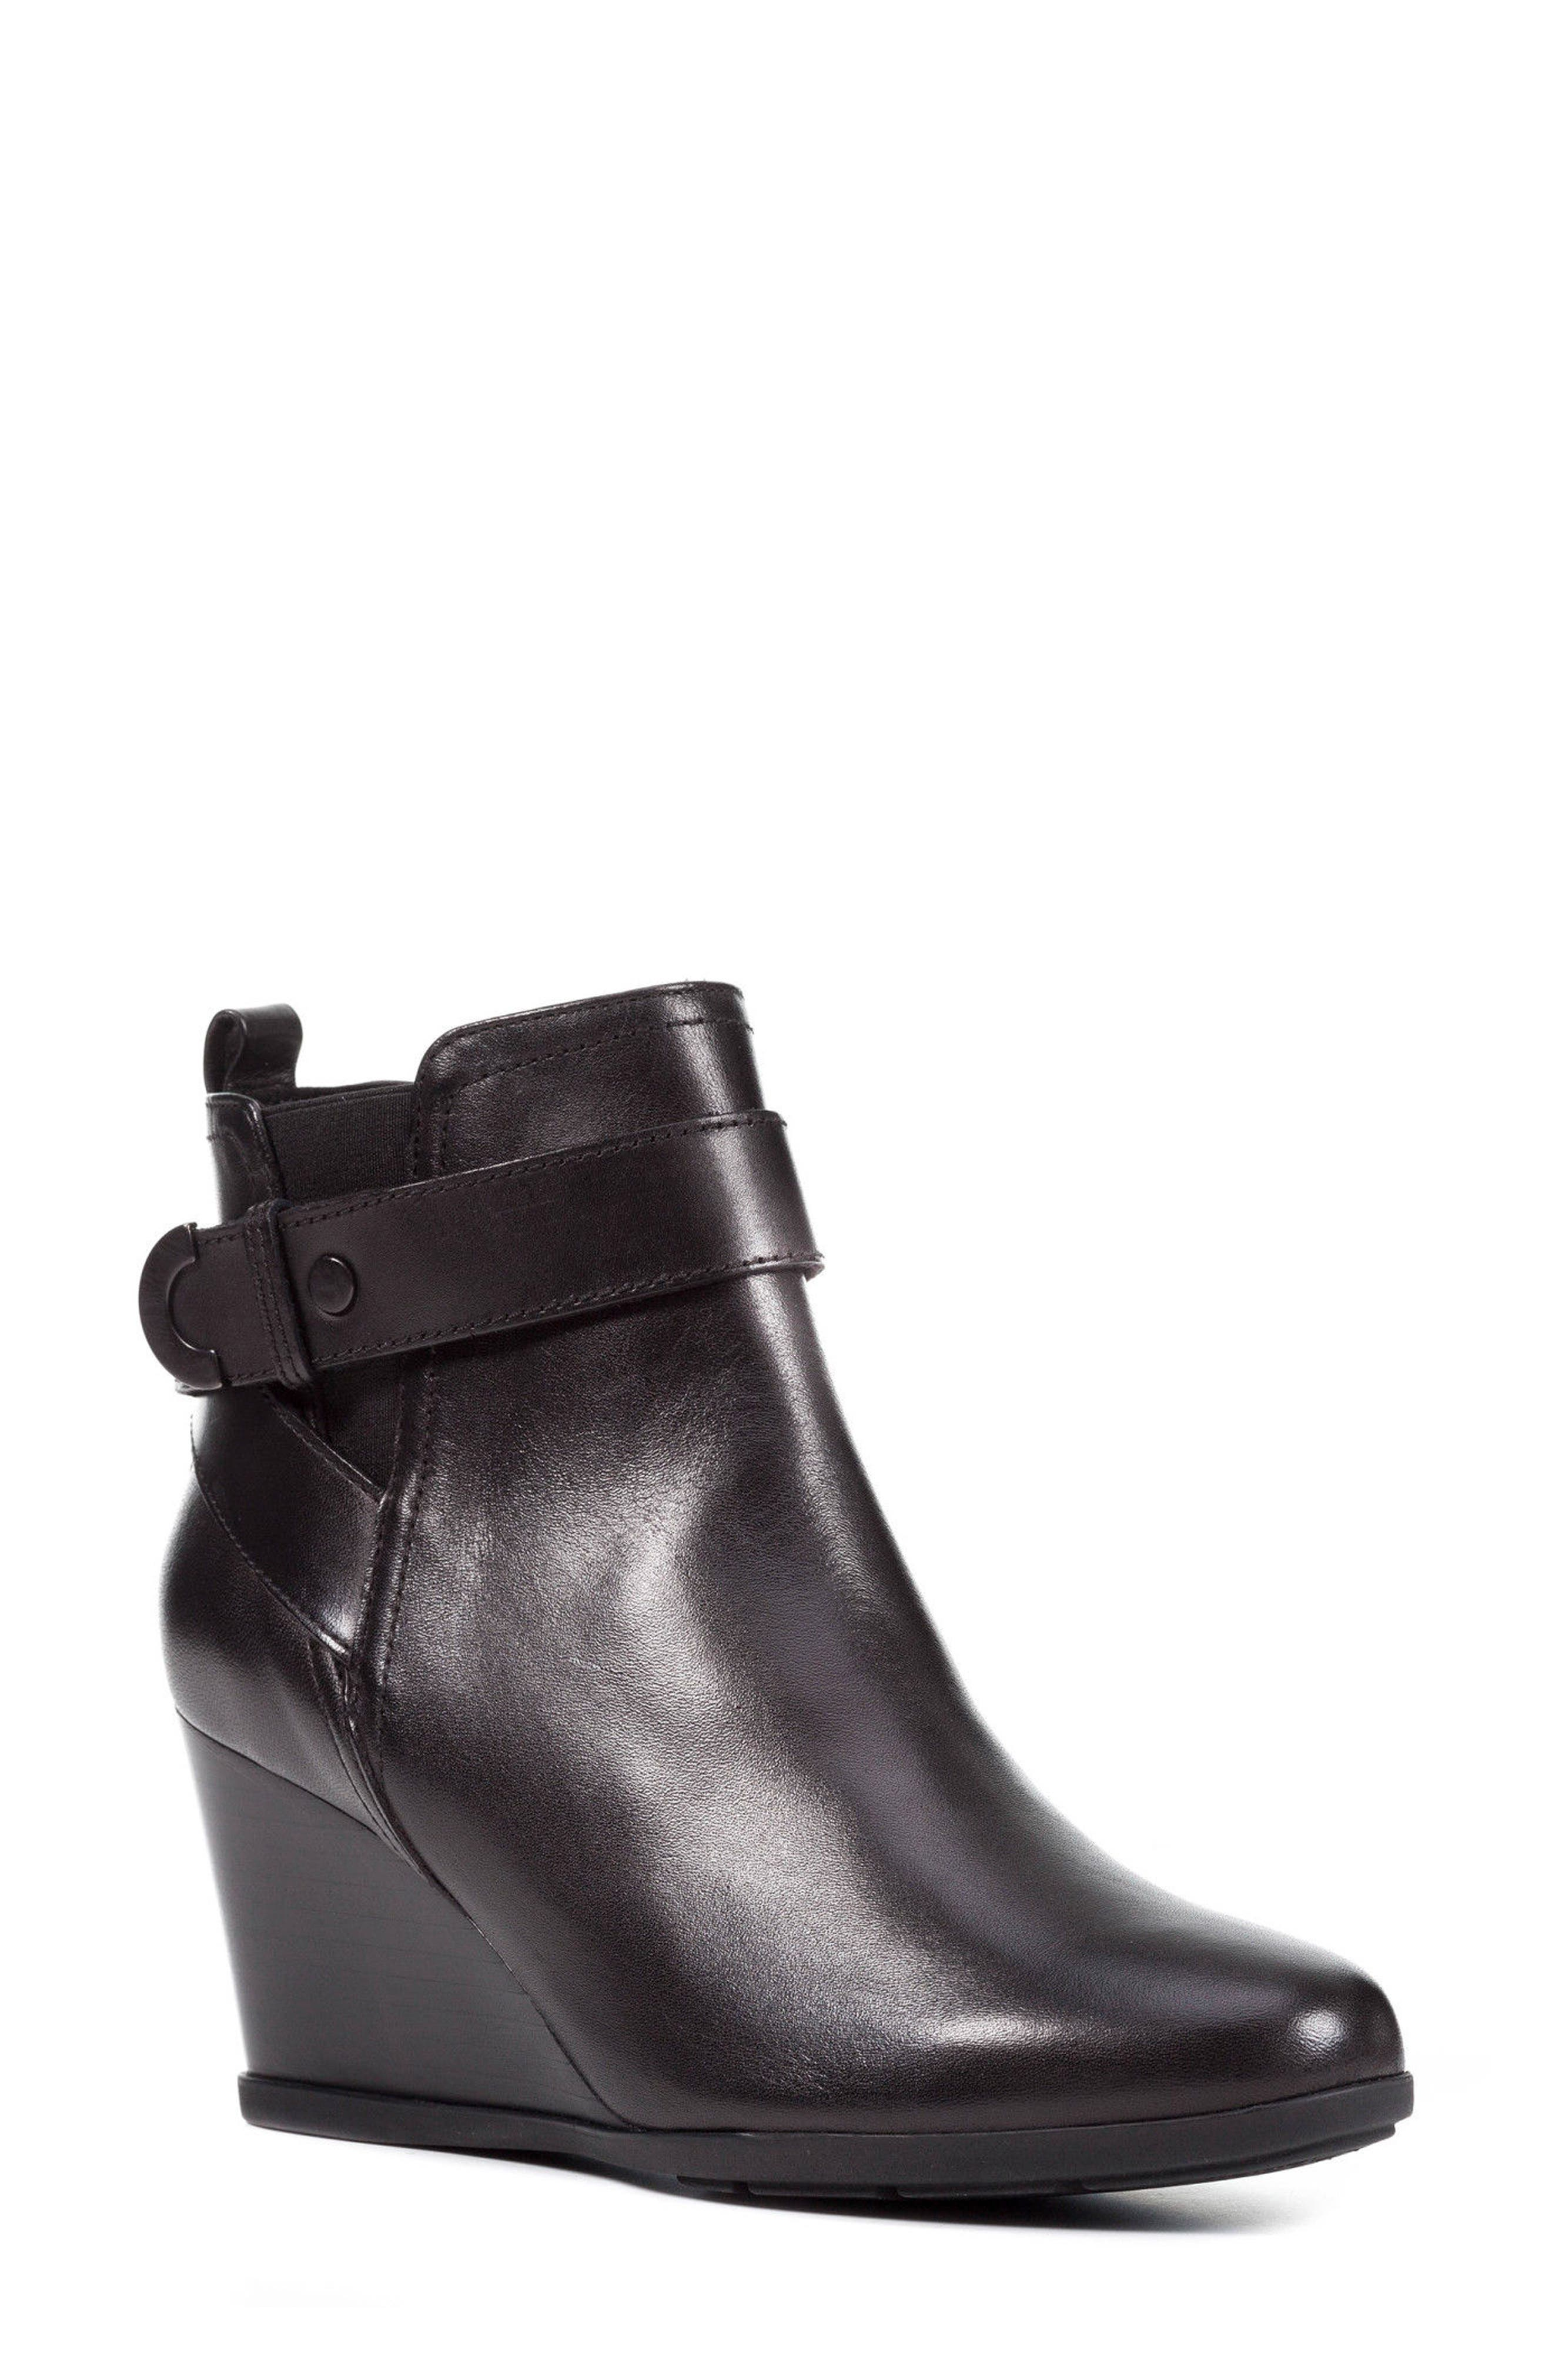 Inspiration Buckle Wedge Bootie,                         Main,                         color, 001